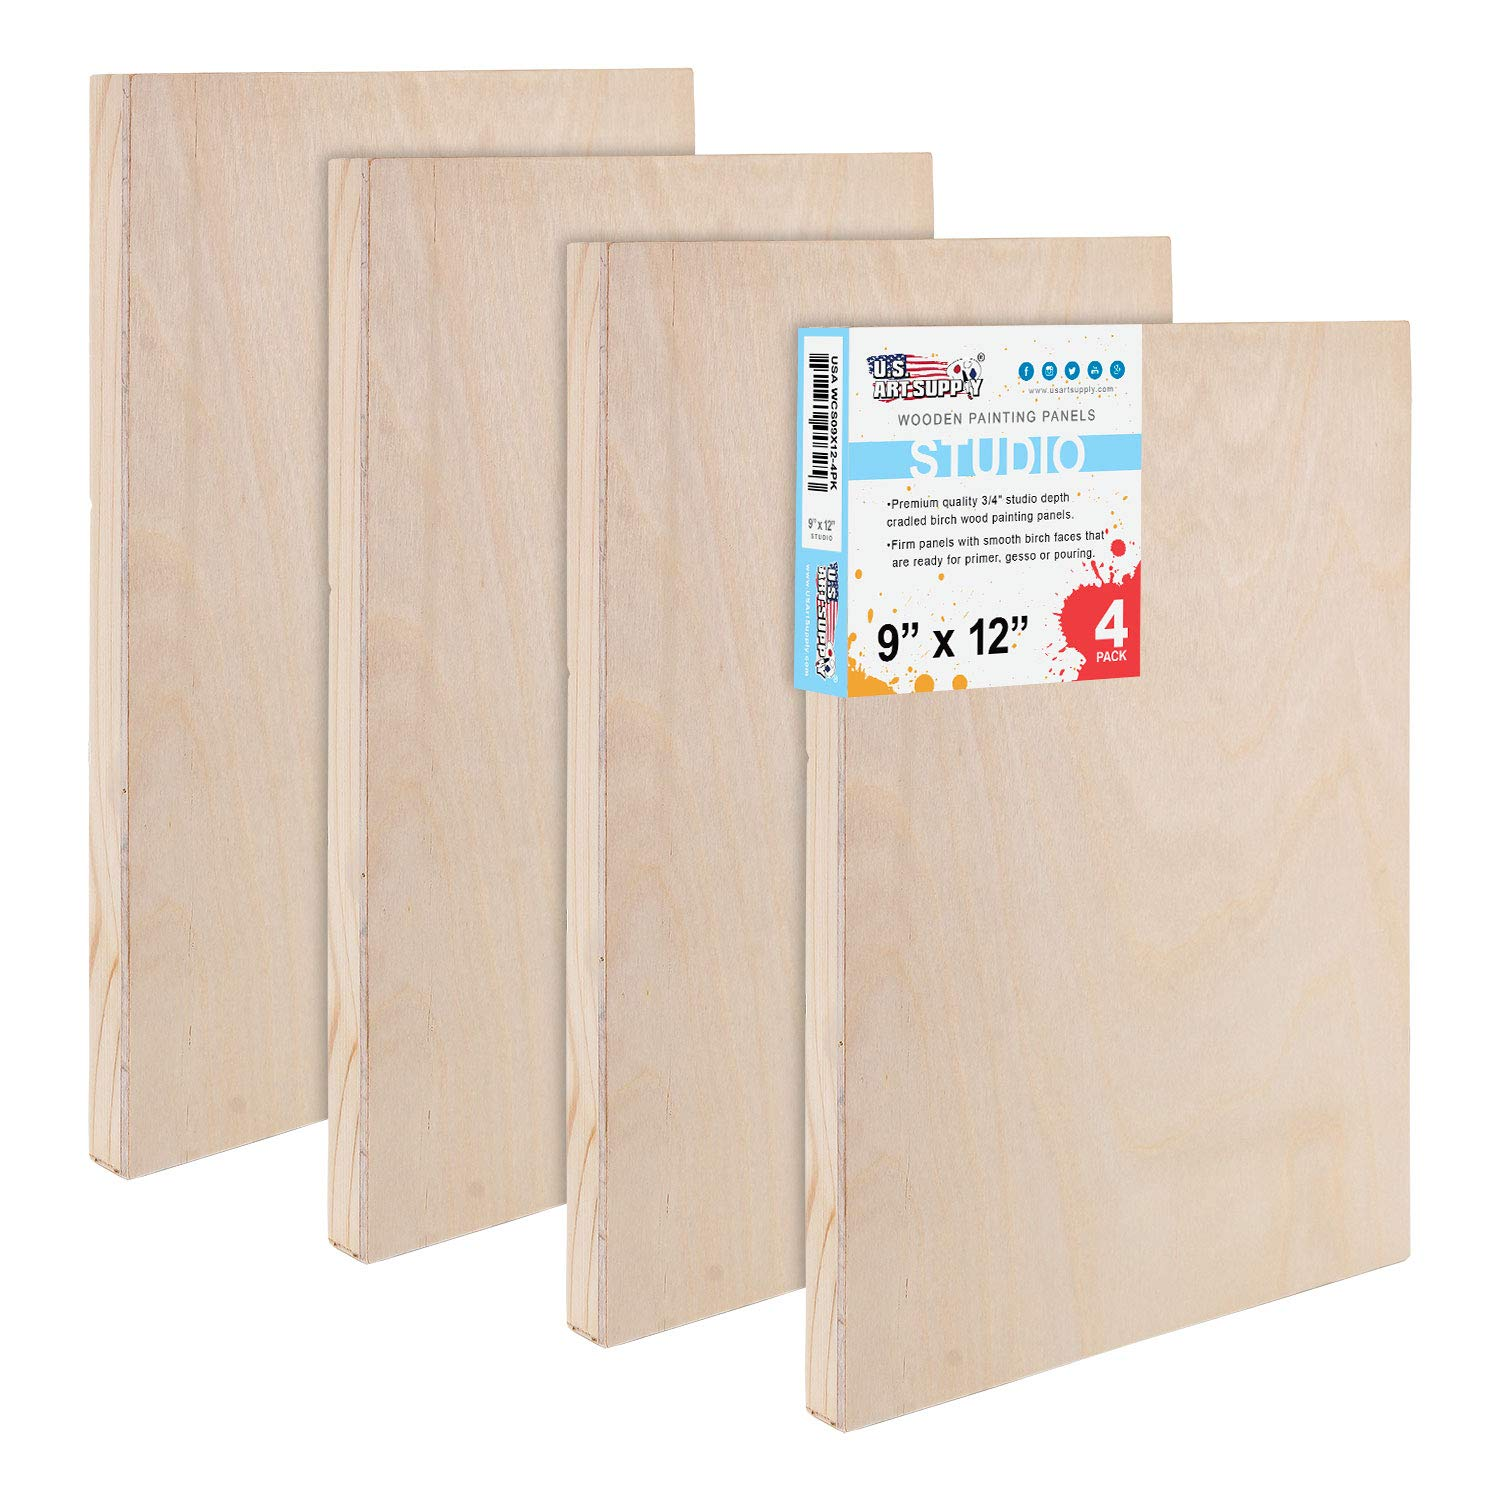 U.S. Art Supply 9'' x 12'' Birch Wood Paint Pouring Panel Boards, Studio 3/4'' Deep Cradle (Pack of 4) - Artist Wooden Wall Canvases - Painting Mixed-Media Craft, Acrylic, Oil, Watercolor, Encaustic